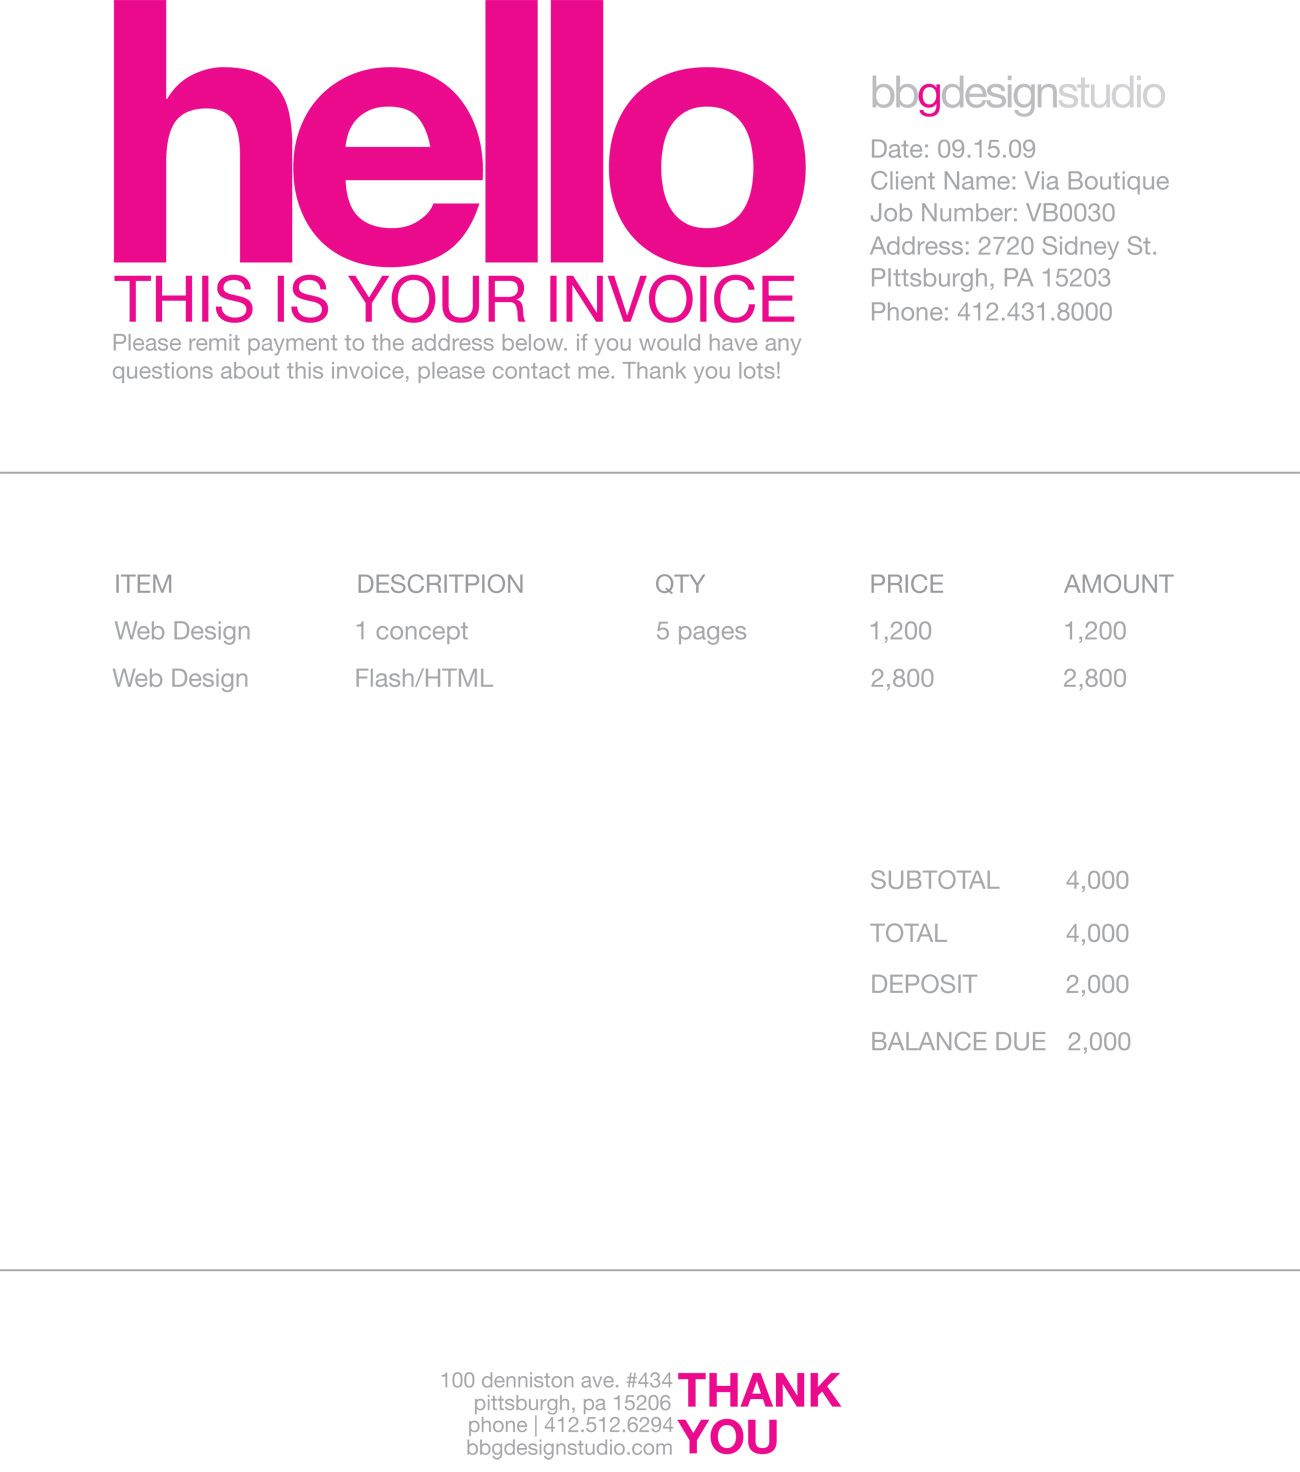 Reliefworkersus  Scenic  Images About Invoice Design On Pinterest With Inspiring Fusion Invoice Besides Jeep Invoice Price Furthermore Estimate Invoice With Delightful Printable Invoice Pdf Also Invoice Templaye In Addition Photography Invoice Sample And Business Invoice Software As Well As Invoice Template Word Free Additionally Invoice For Billing From Pinterestcom With Reliefworkersus  Inspiring  Images About Invoice Design On Pinterest With Delightful Fusion Invoice Besides Jeep Invoice Price Furthermore Estimate Invoice And Scenic Printable Invoice Pdf Also Invoice Templaye In Addition Photography Invoice Sample From Pinterestcom